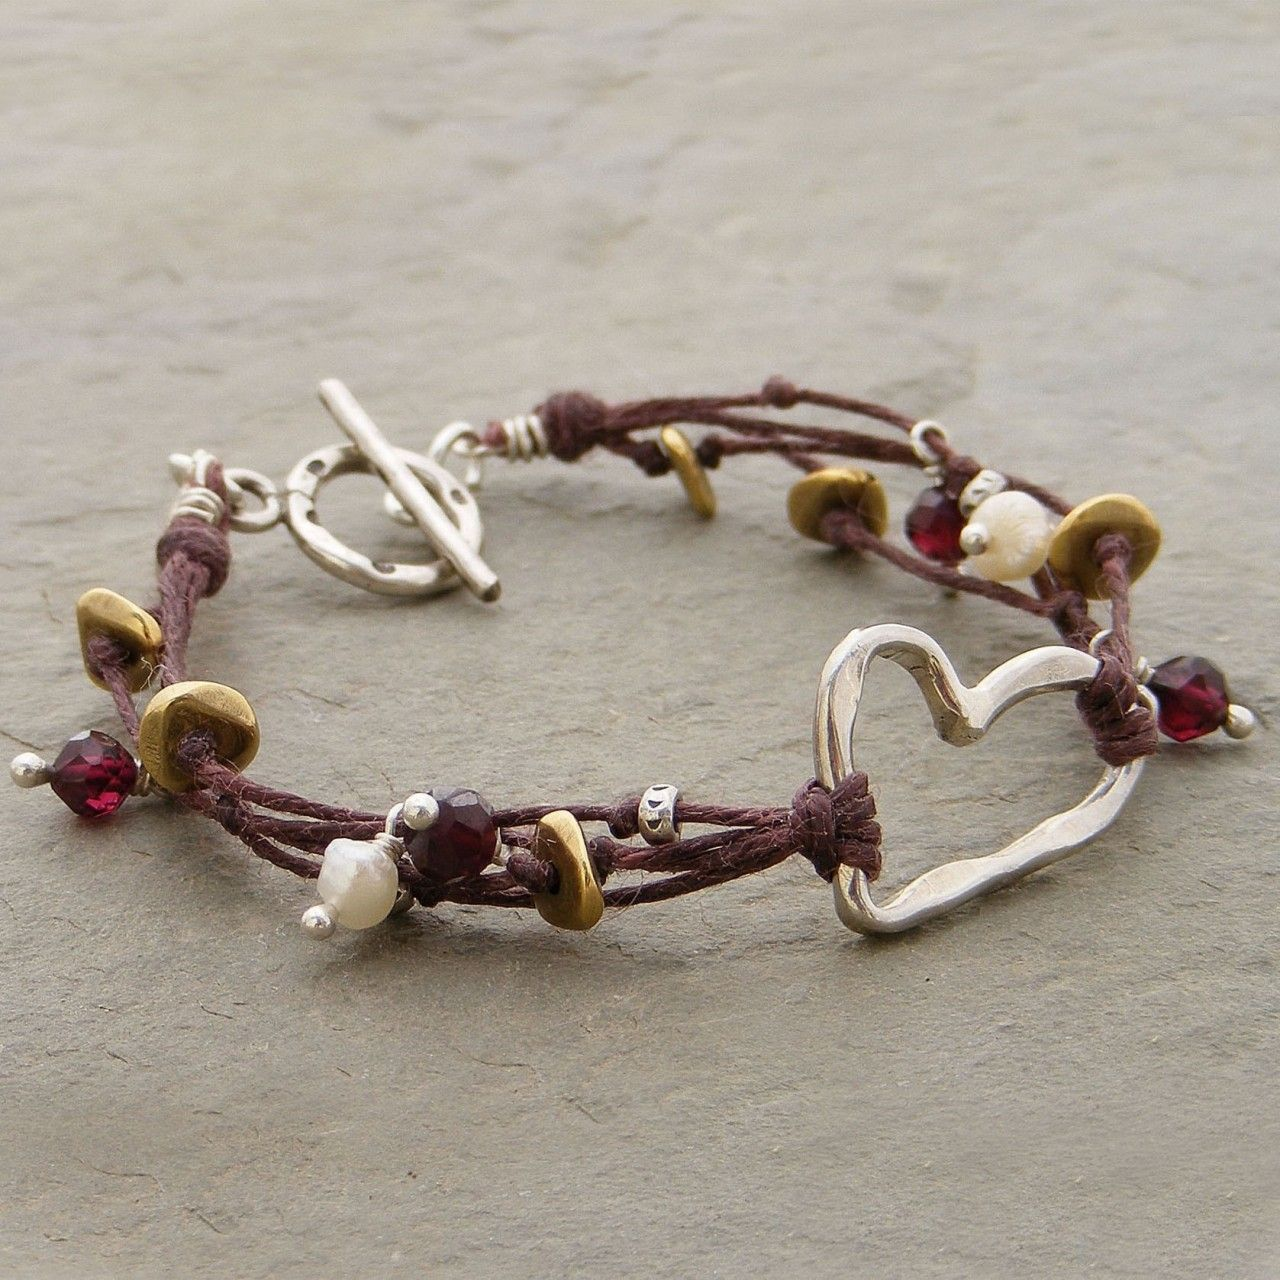 Multi-strands waxed linen with knotted beads #handmade #jewelry #bracelet #DIY